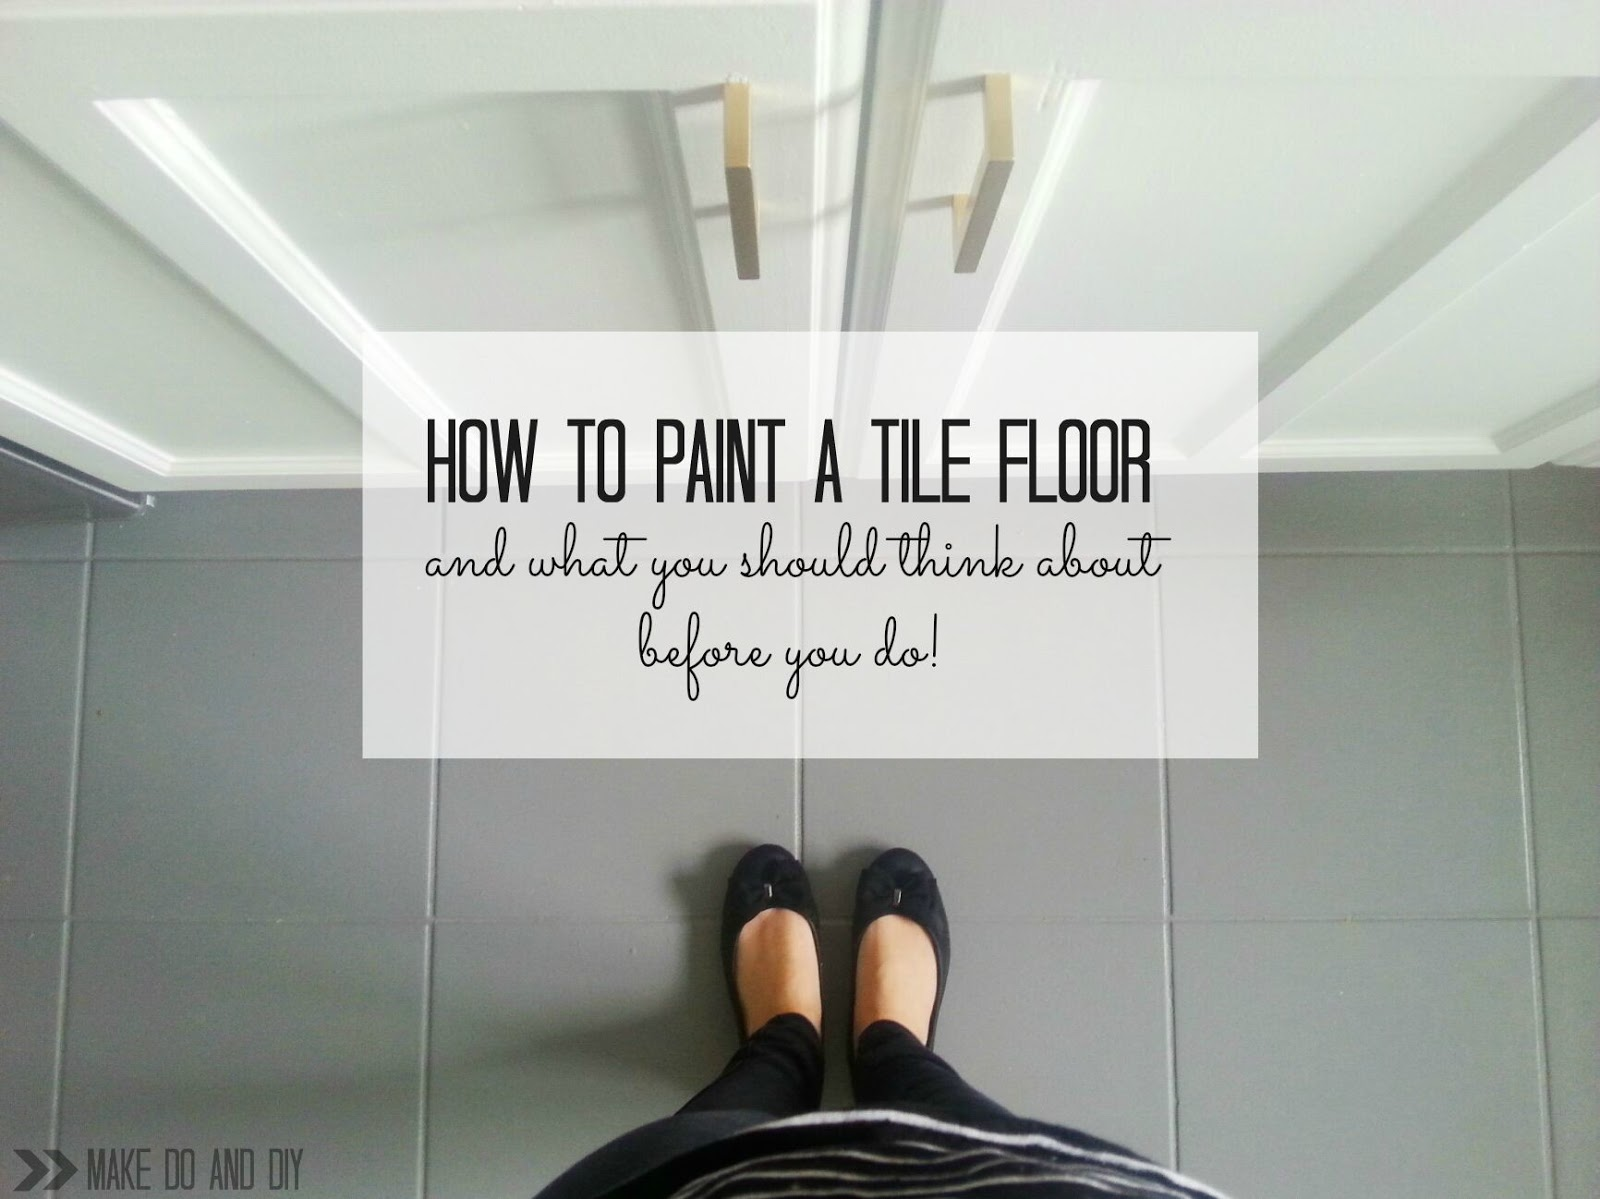 Painted tile floor no really make do and diy for Can you paint over linoleum floors